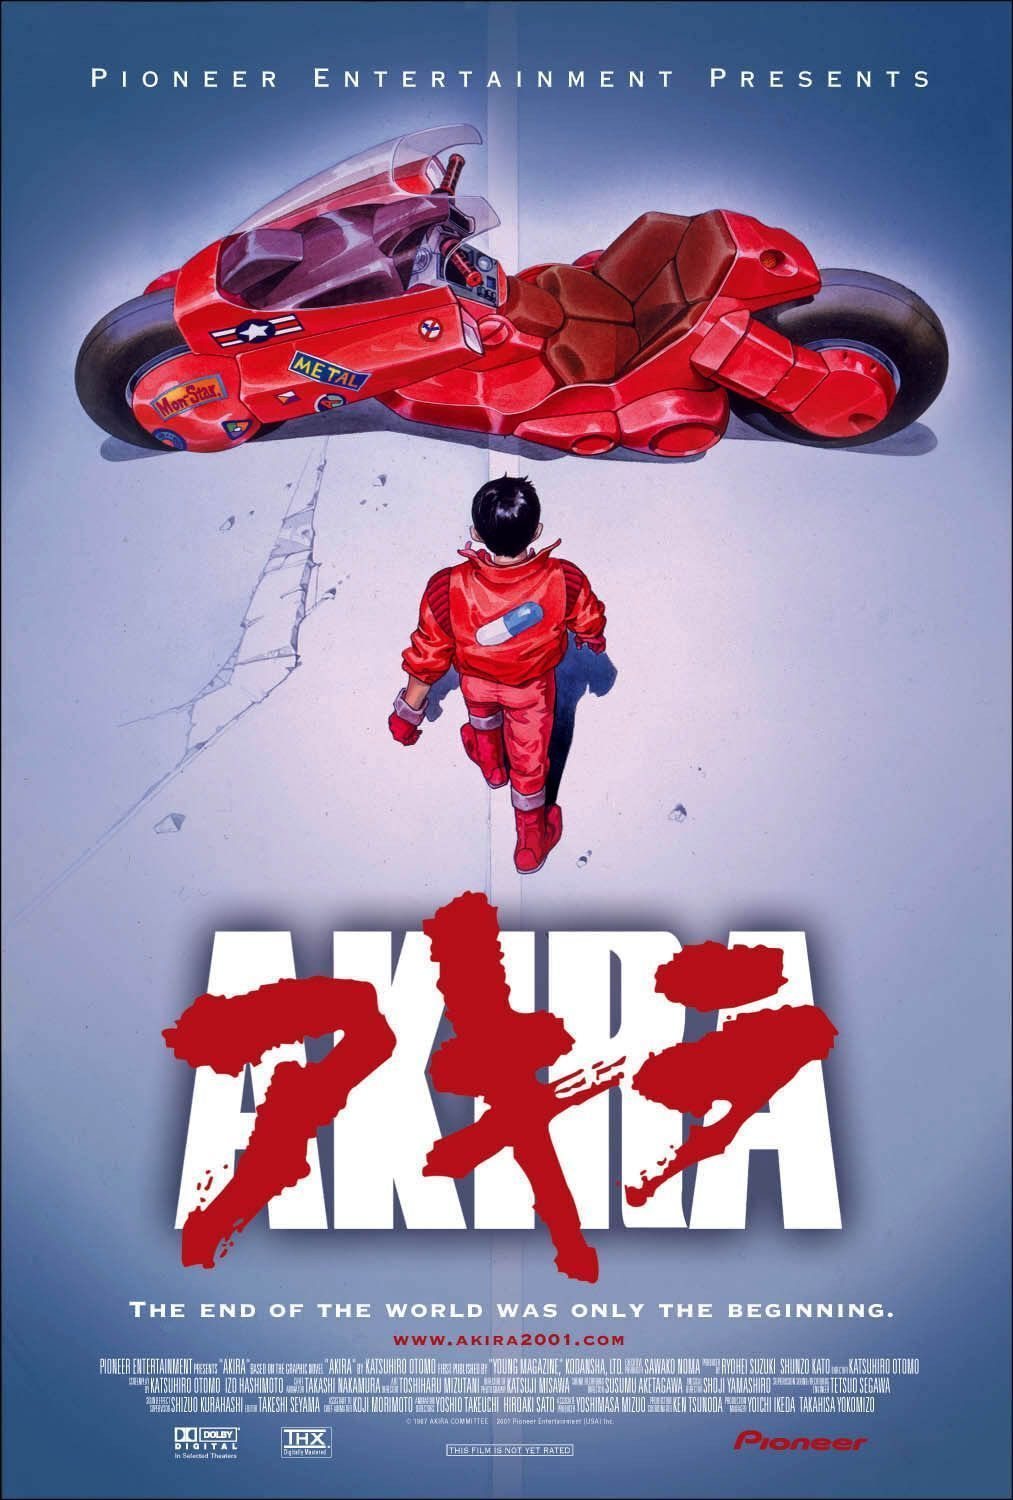 1013x1500 Akira images Akira Poster HD wallpaper and background photos (13827694)